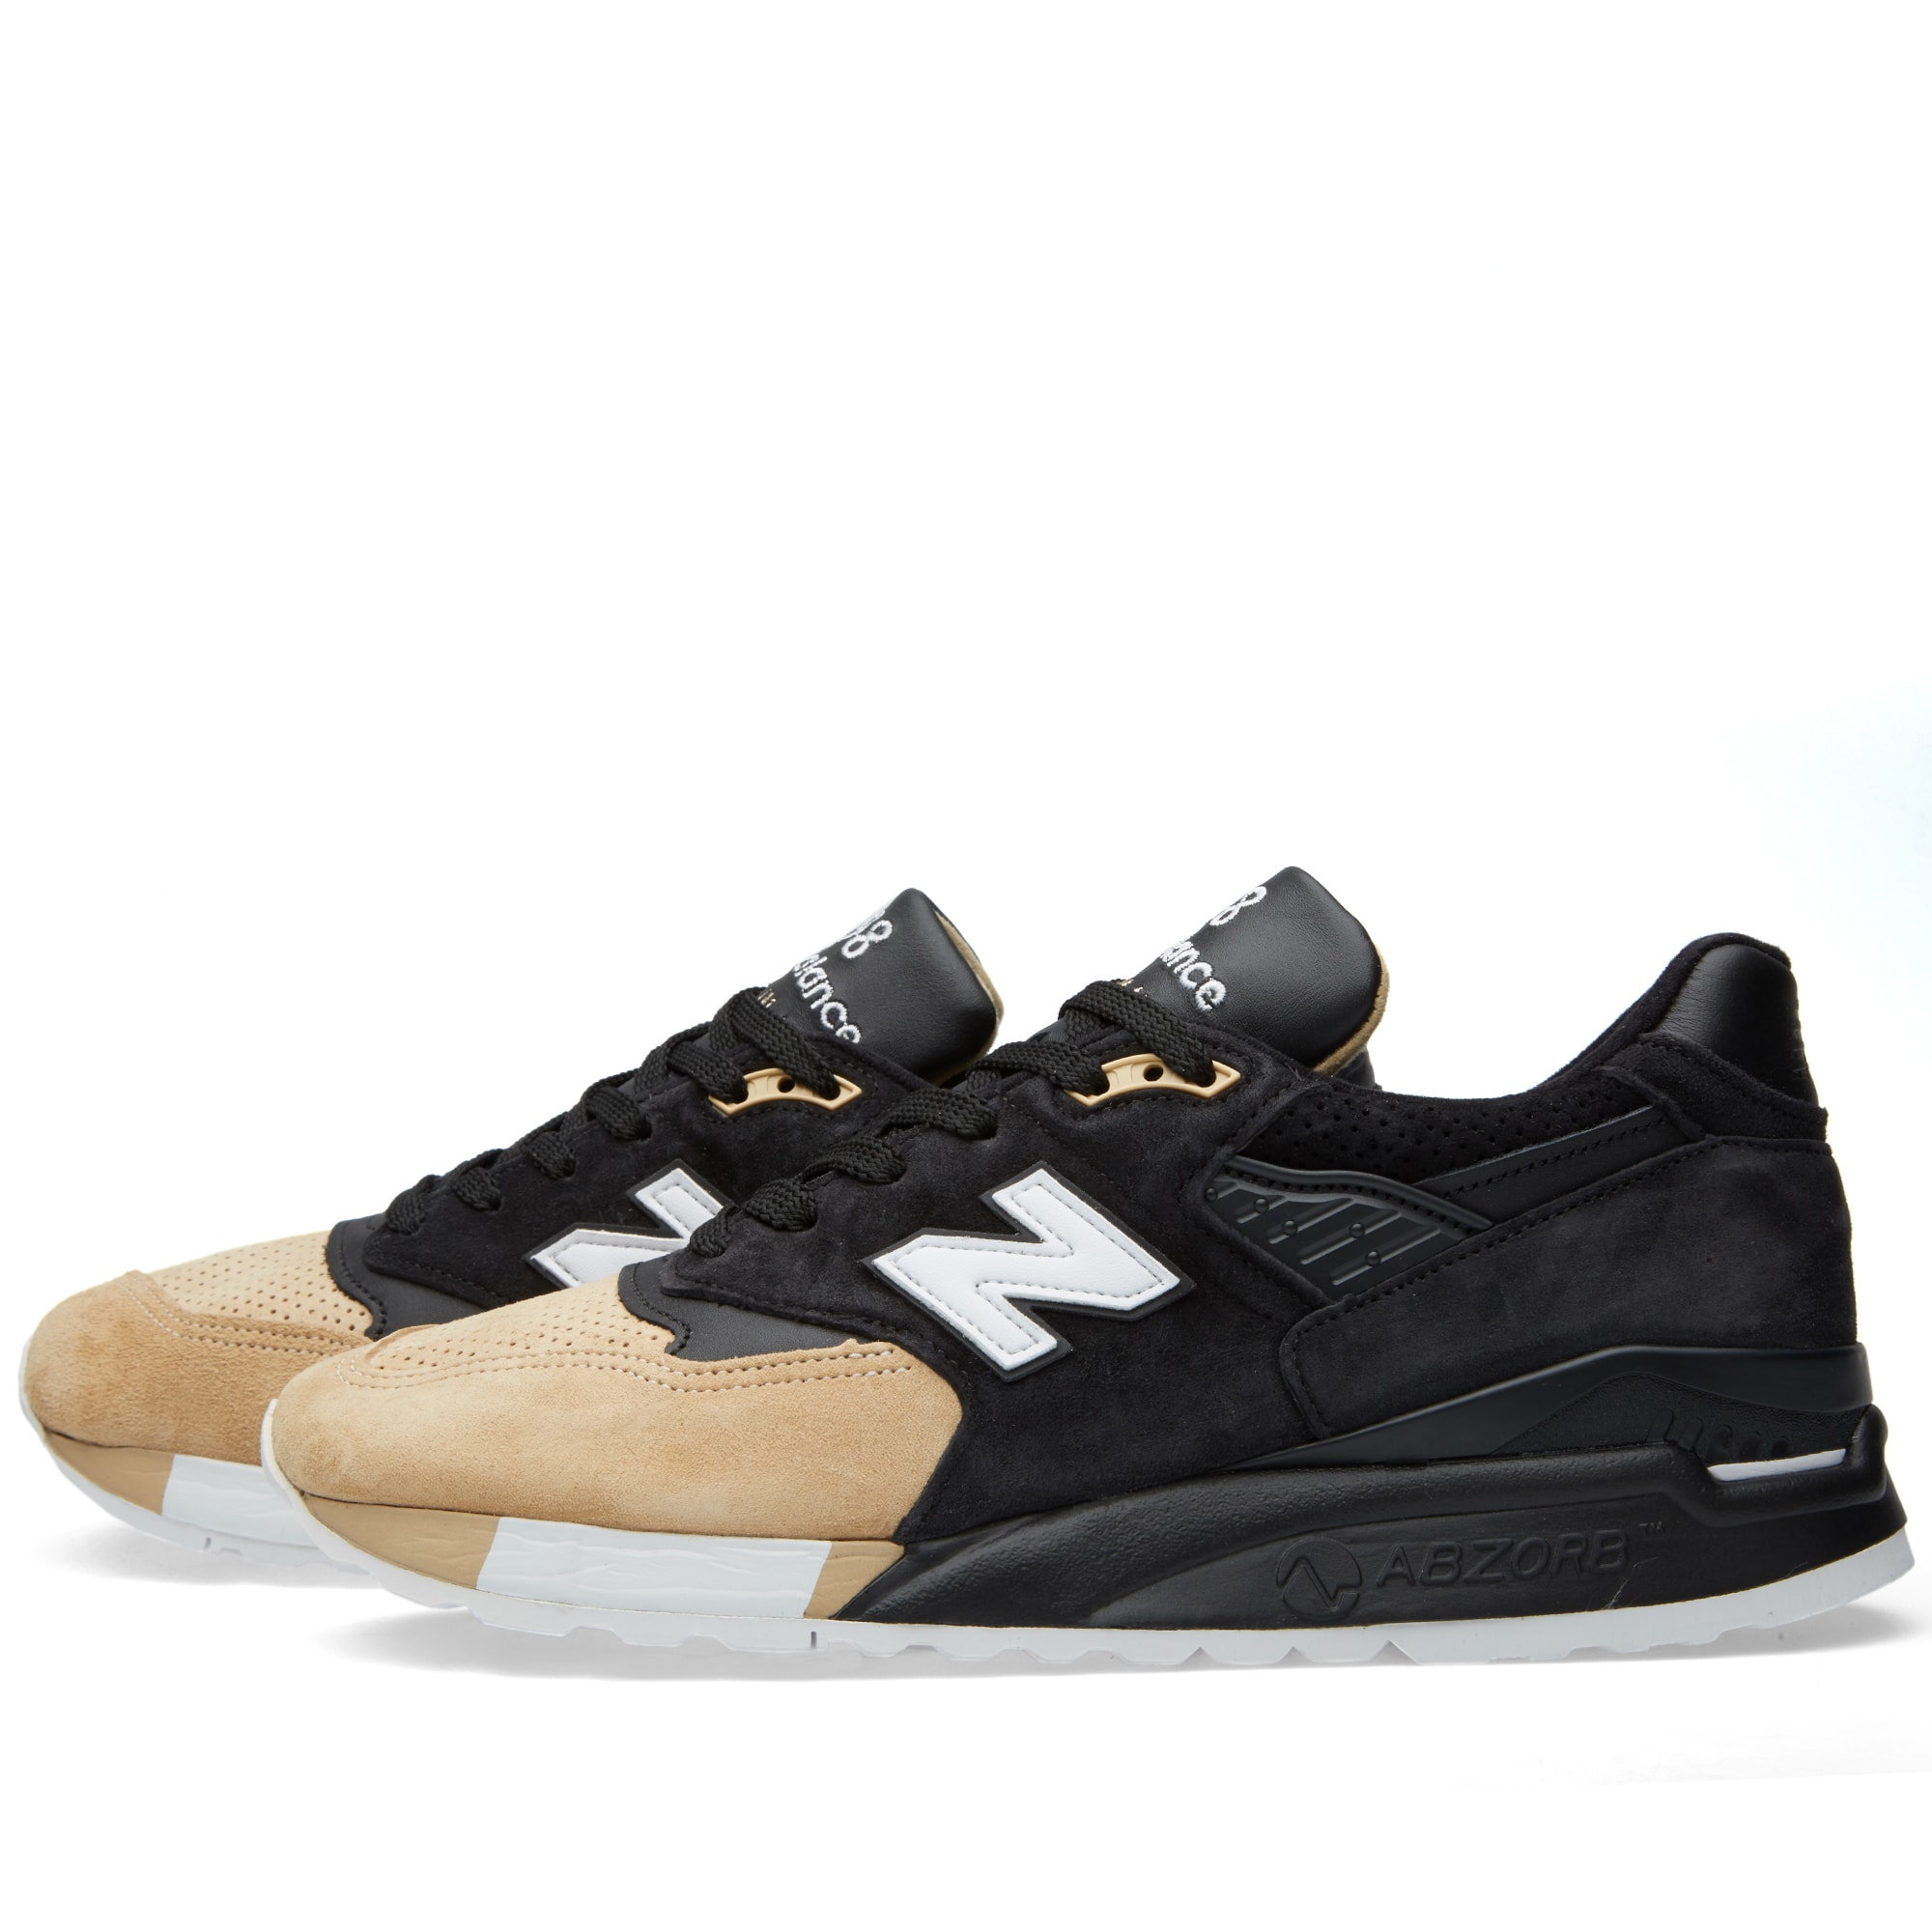 quite nice 1ac86 cb36c New Balance x Premier M998PRMR - Made in the USA